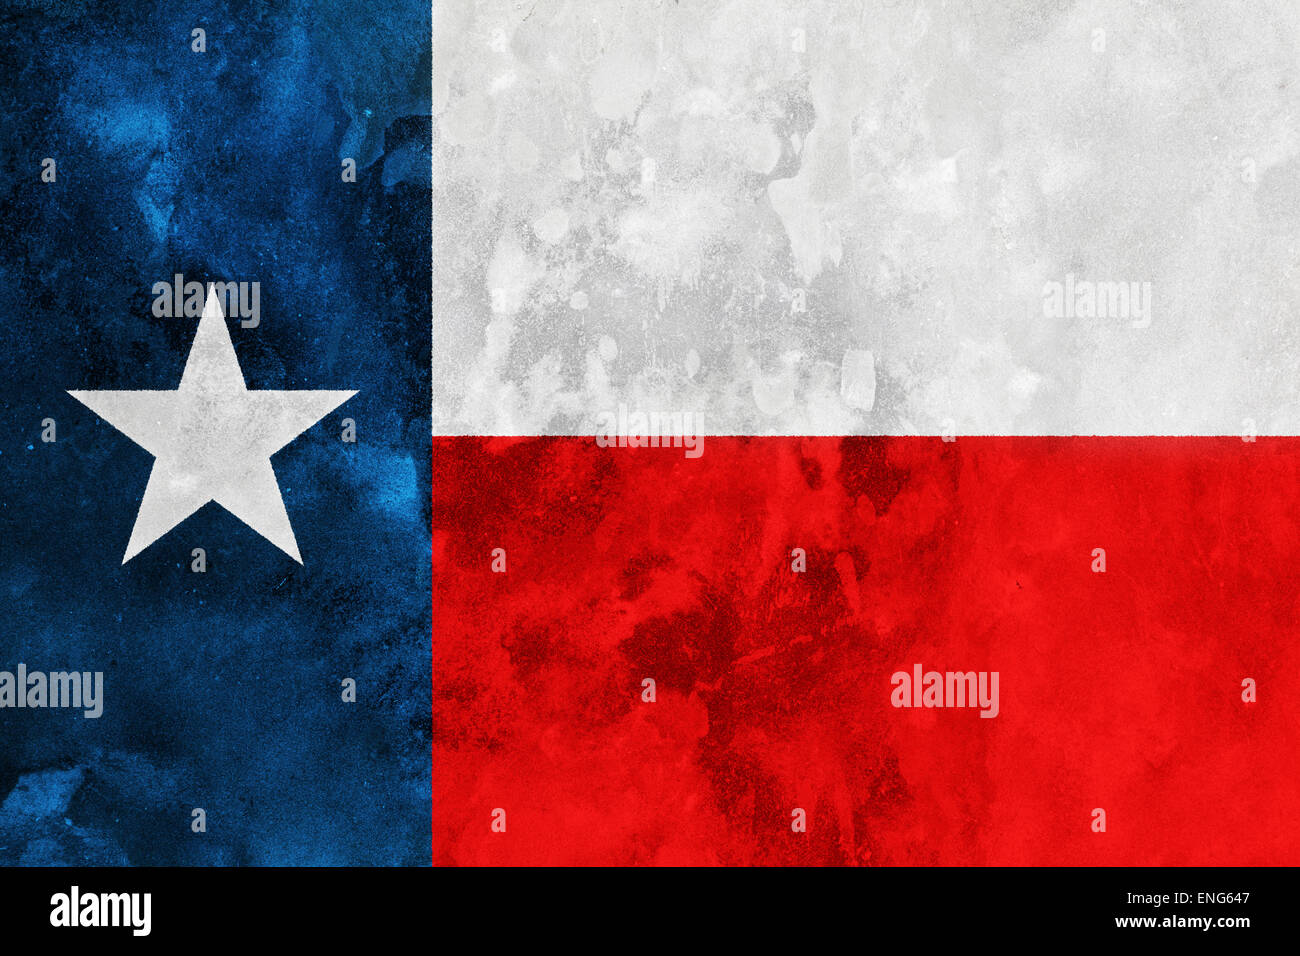 Grunge stylized flag of Texas State - Stock Image